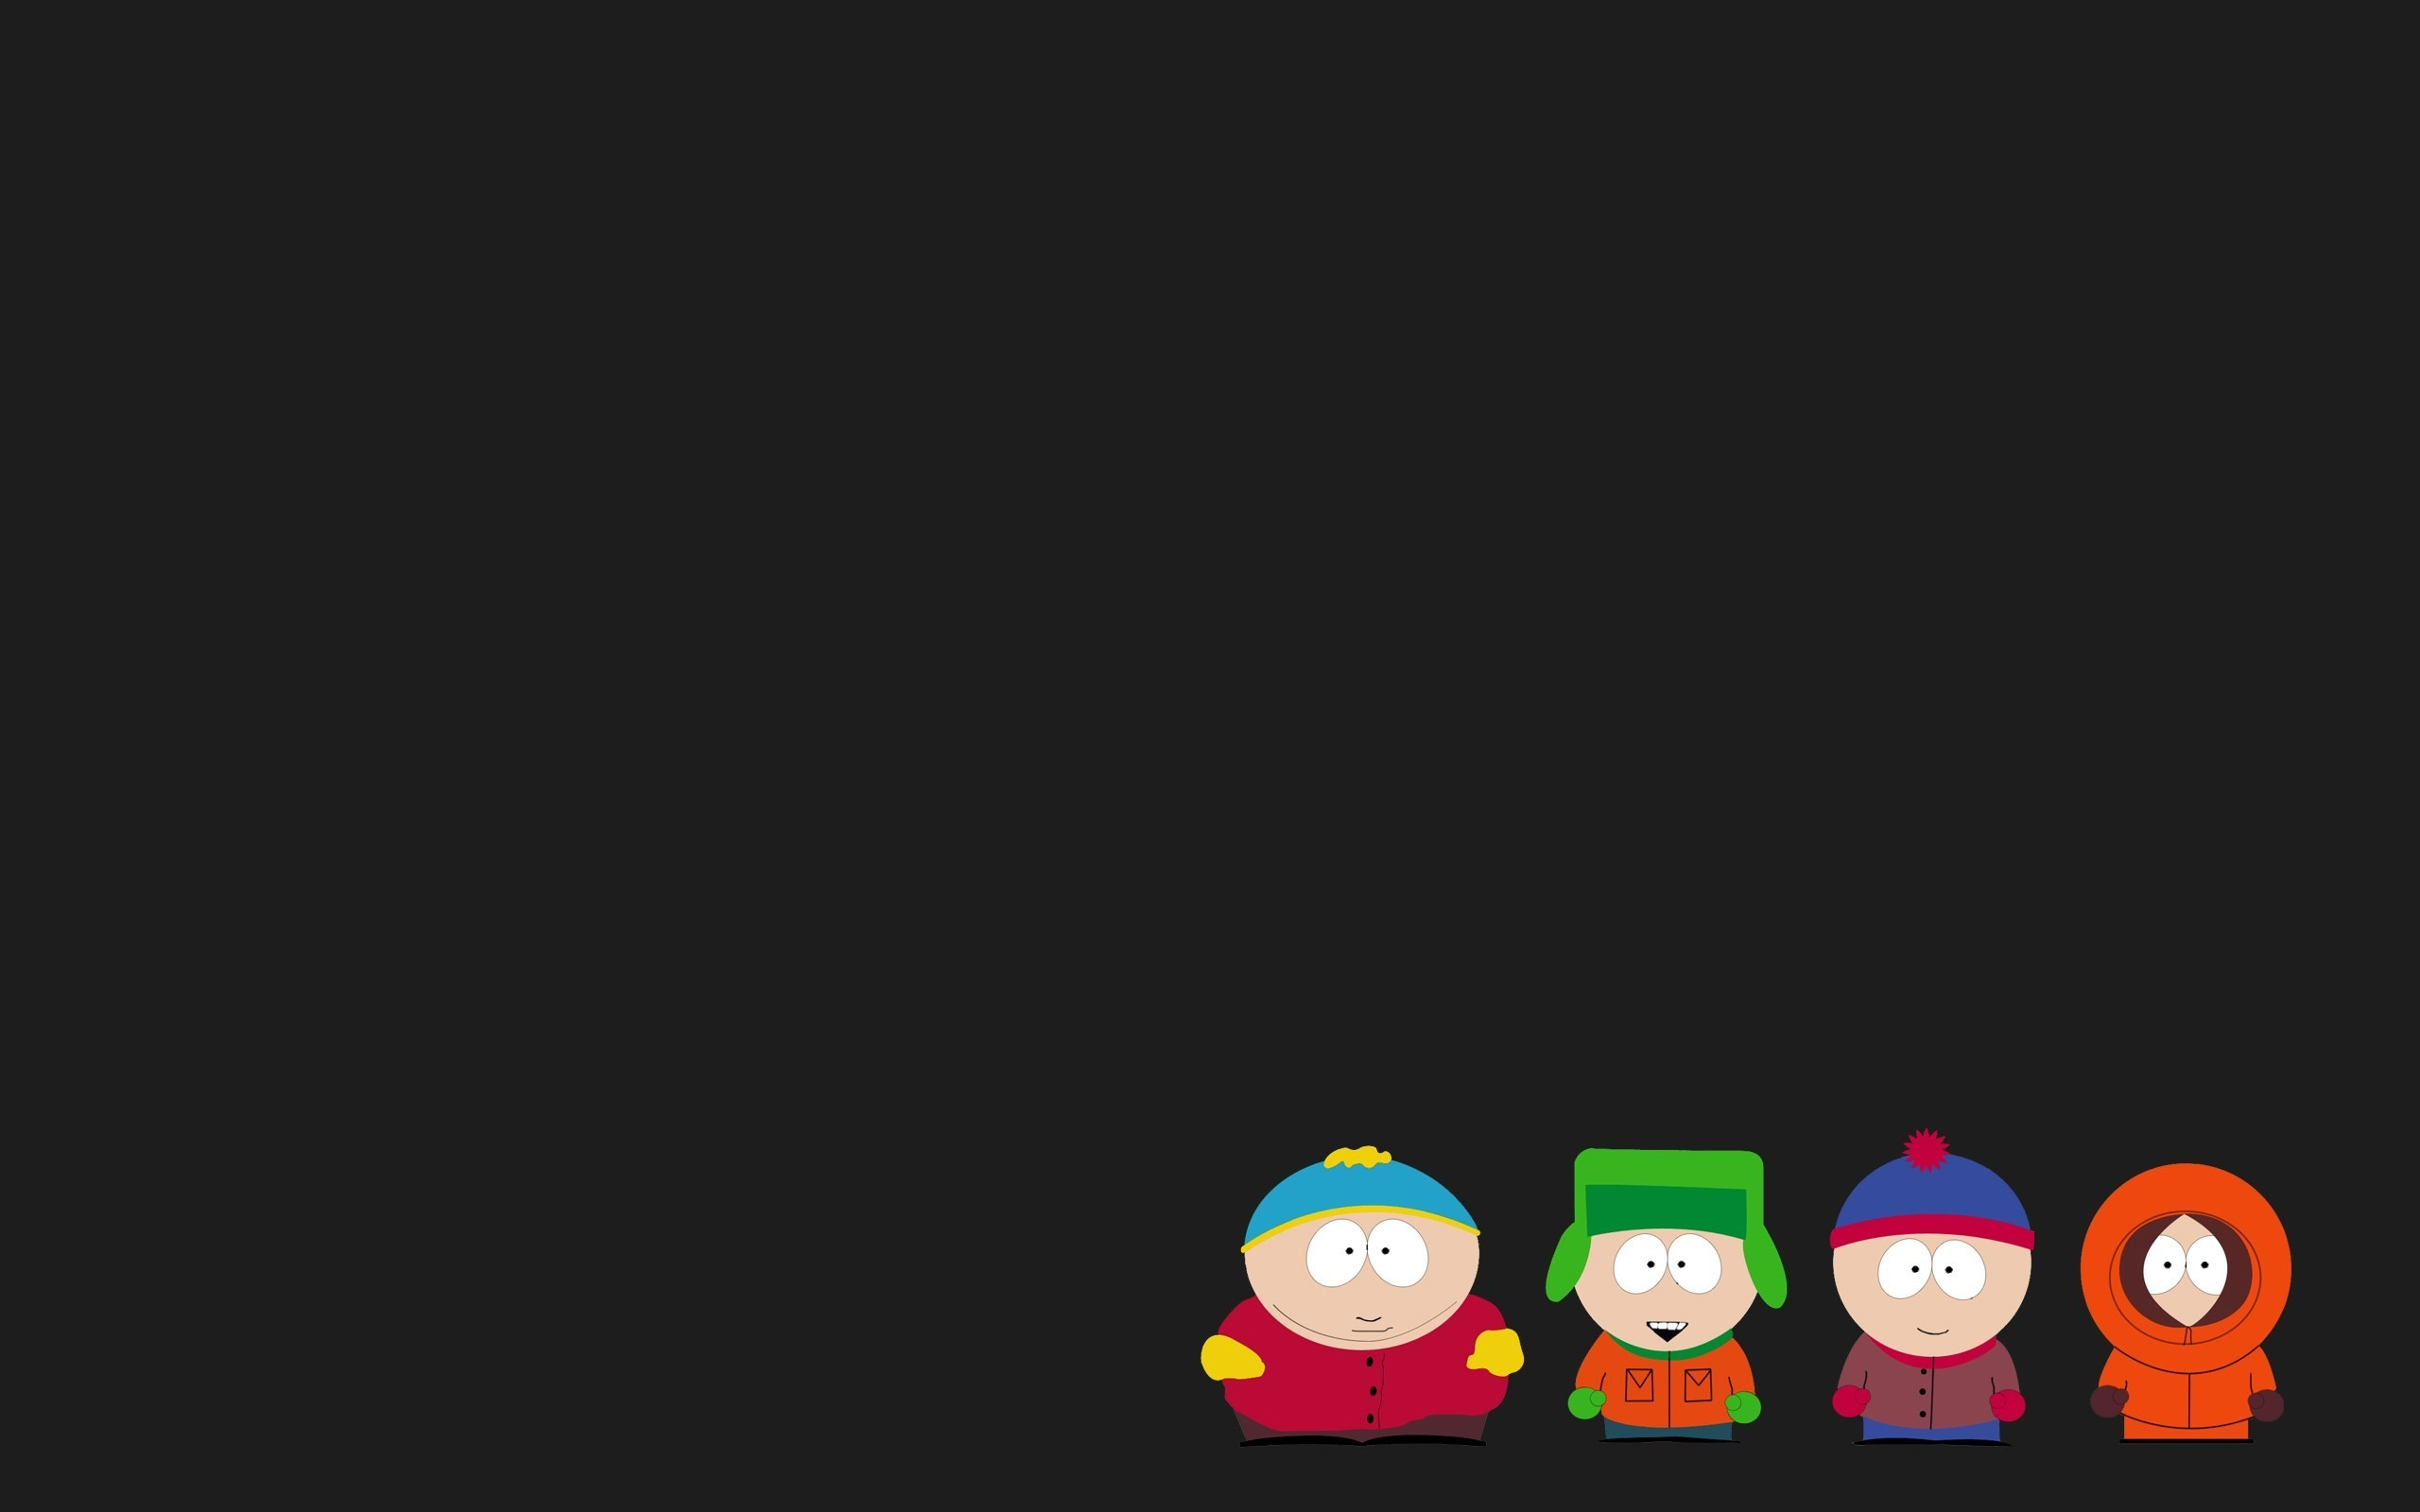 South park wallpapers 81 pictures - South park wallpaper butters ...